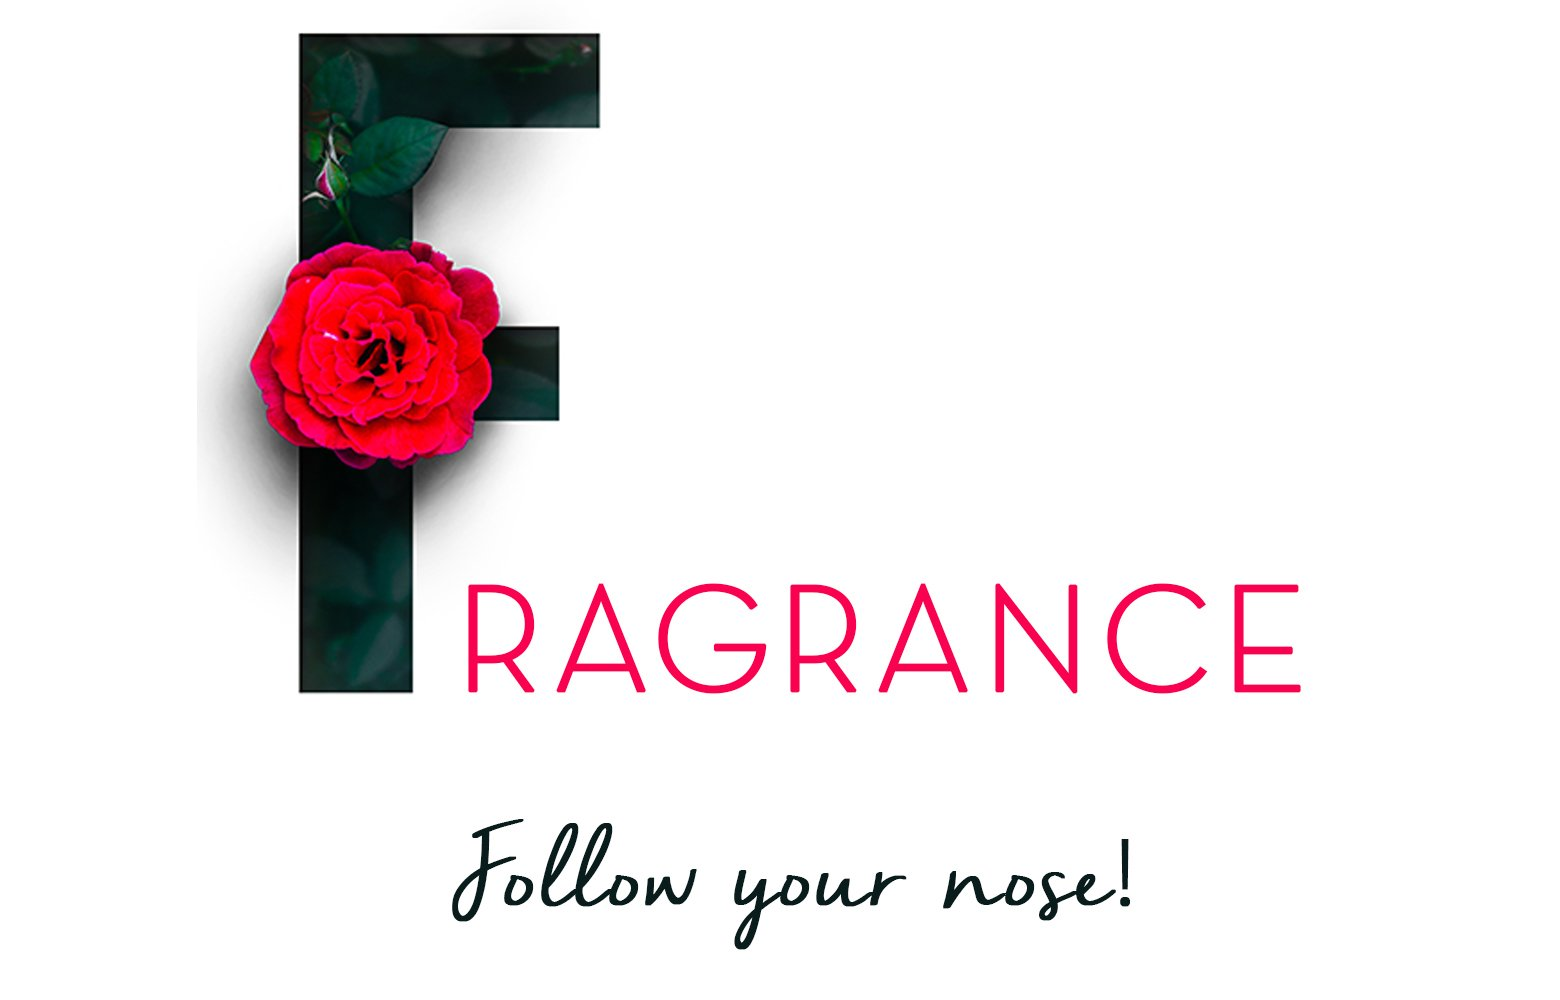 fragrance follow your nose